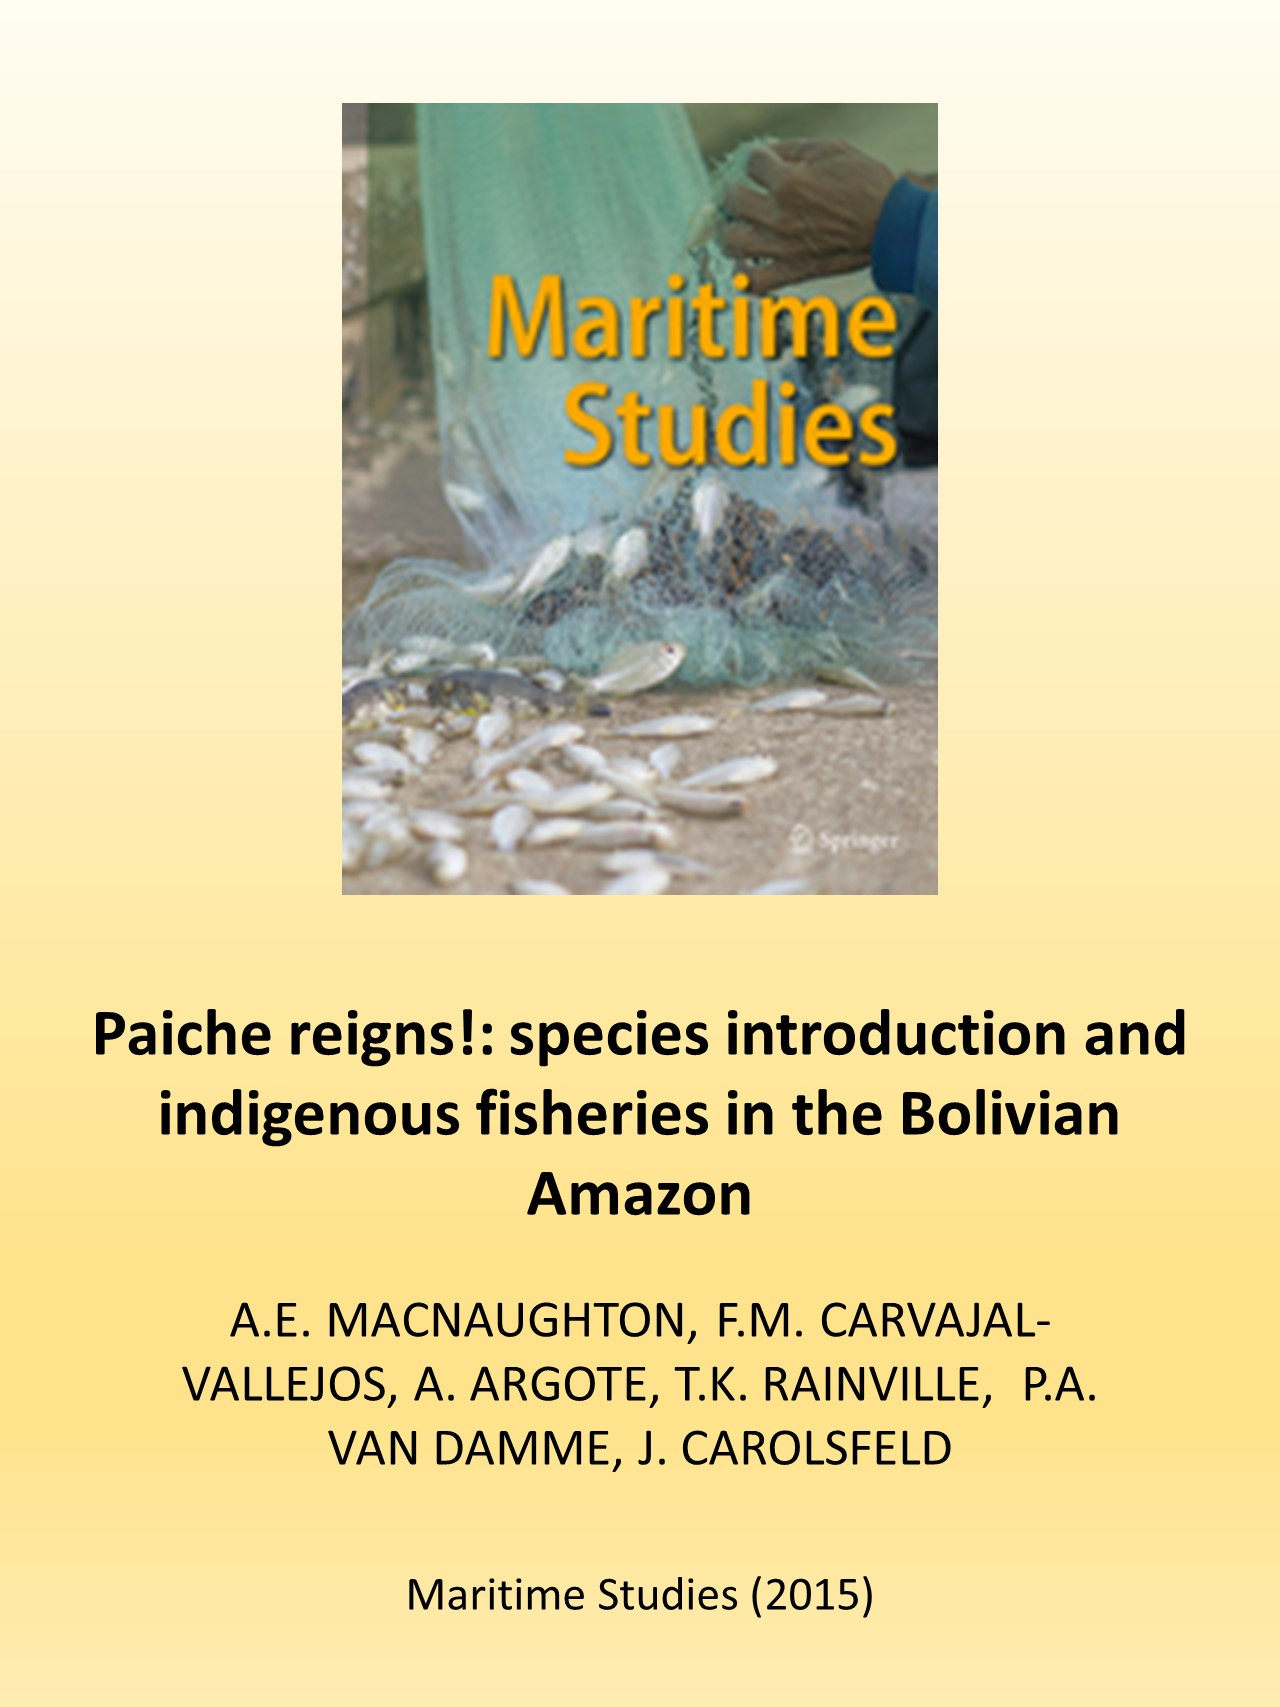 """Paiche reigns!"" species introduction and indigenous fisheries in the Bolivian Amazon"